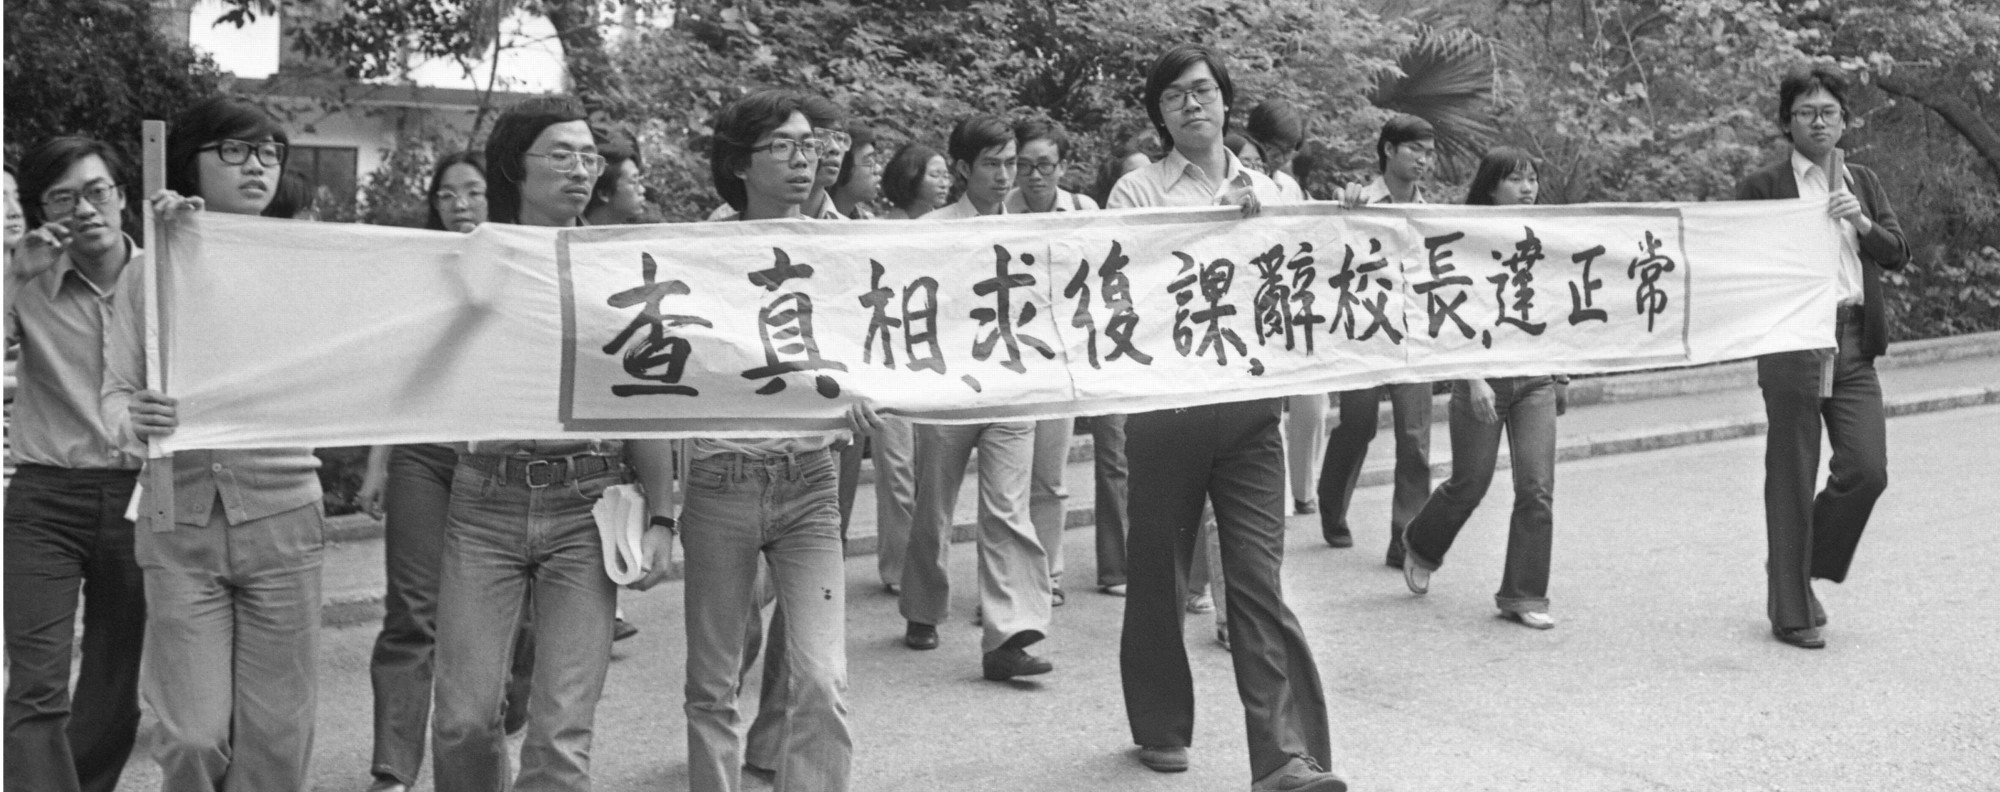 Students march to Government House in May 1978. Photo: Yau Tin-kwai